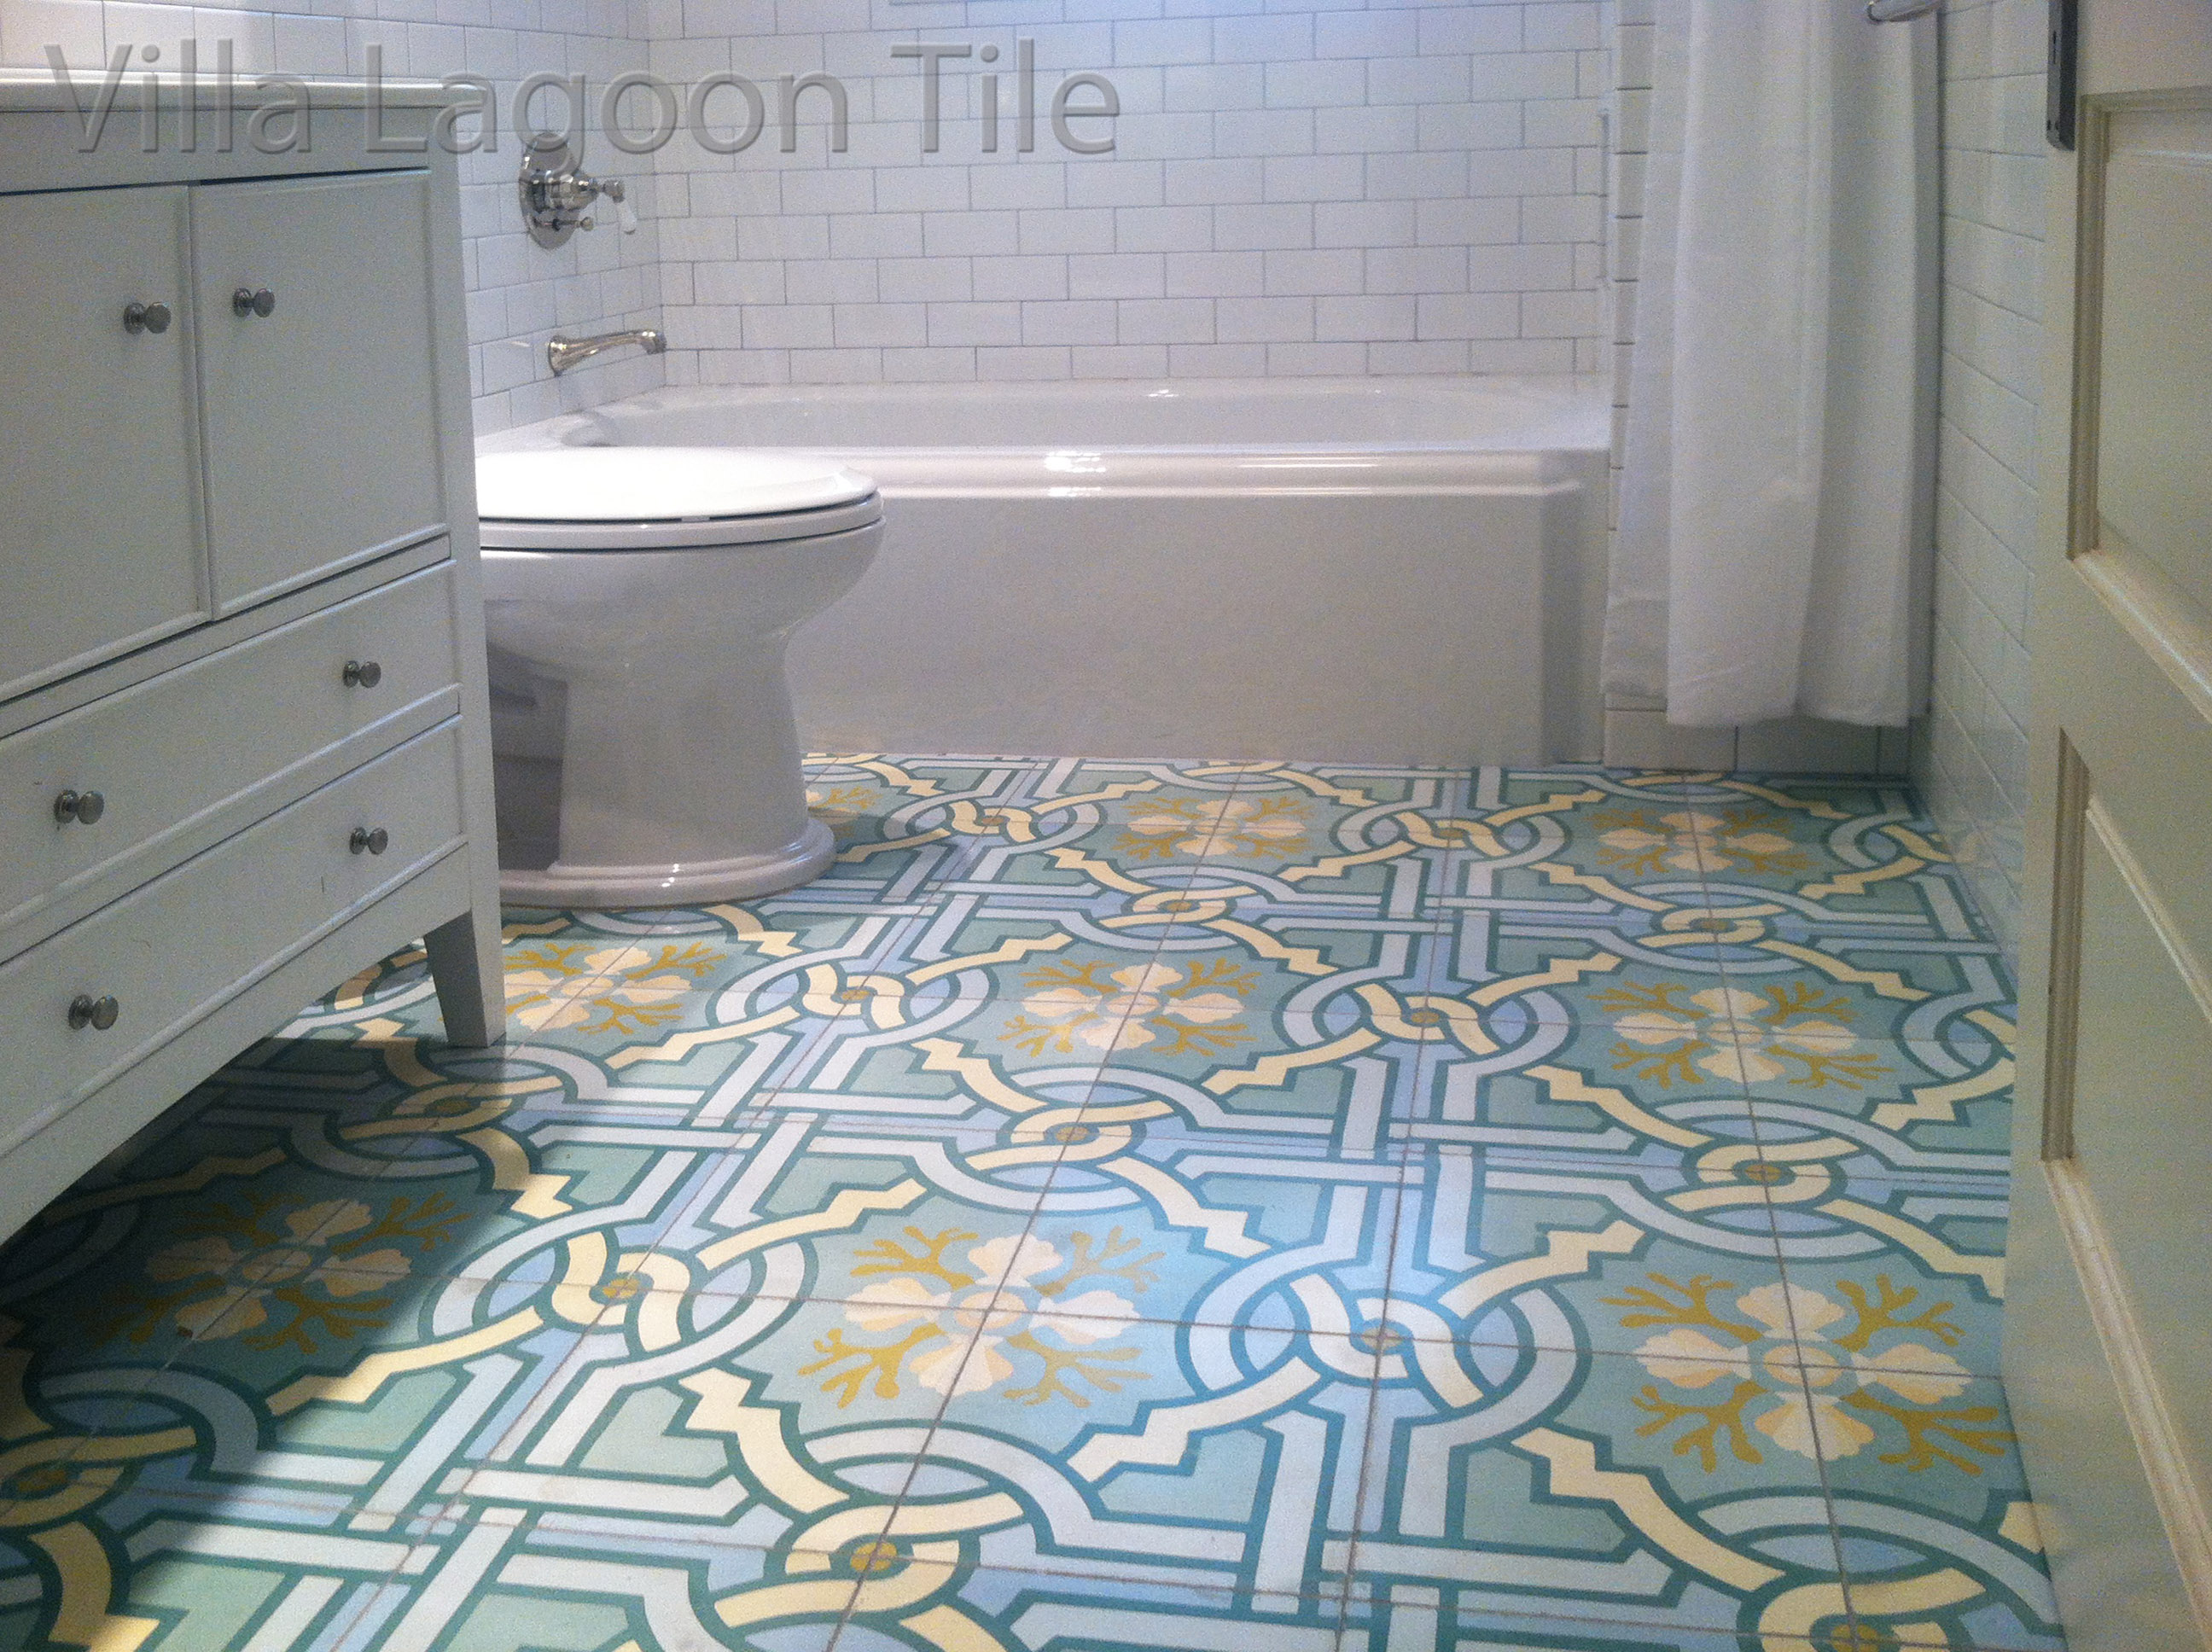 "Villa Lagoon Tile's original ""Venetian Azul"" cement tile brings a white bathroom to life."